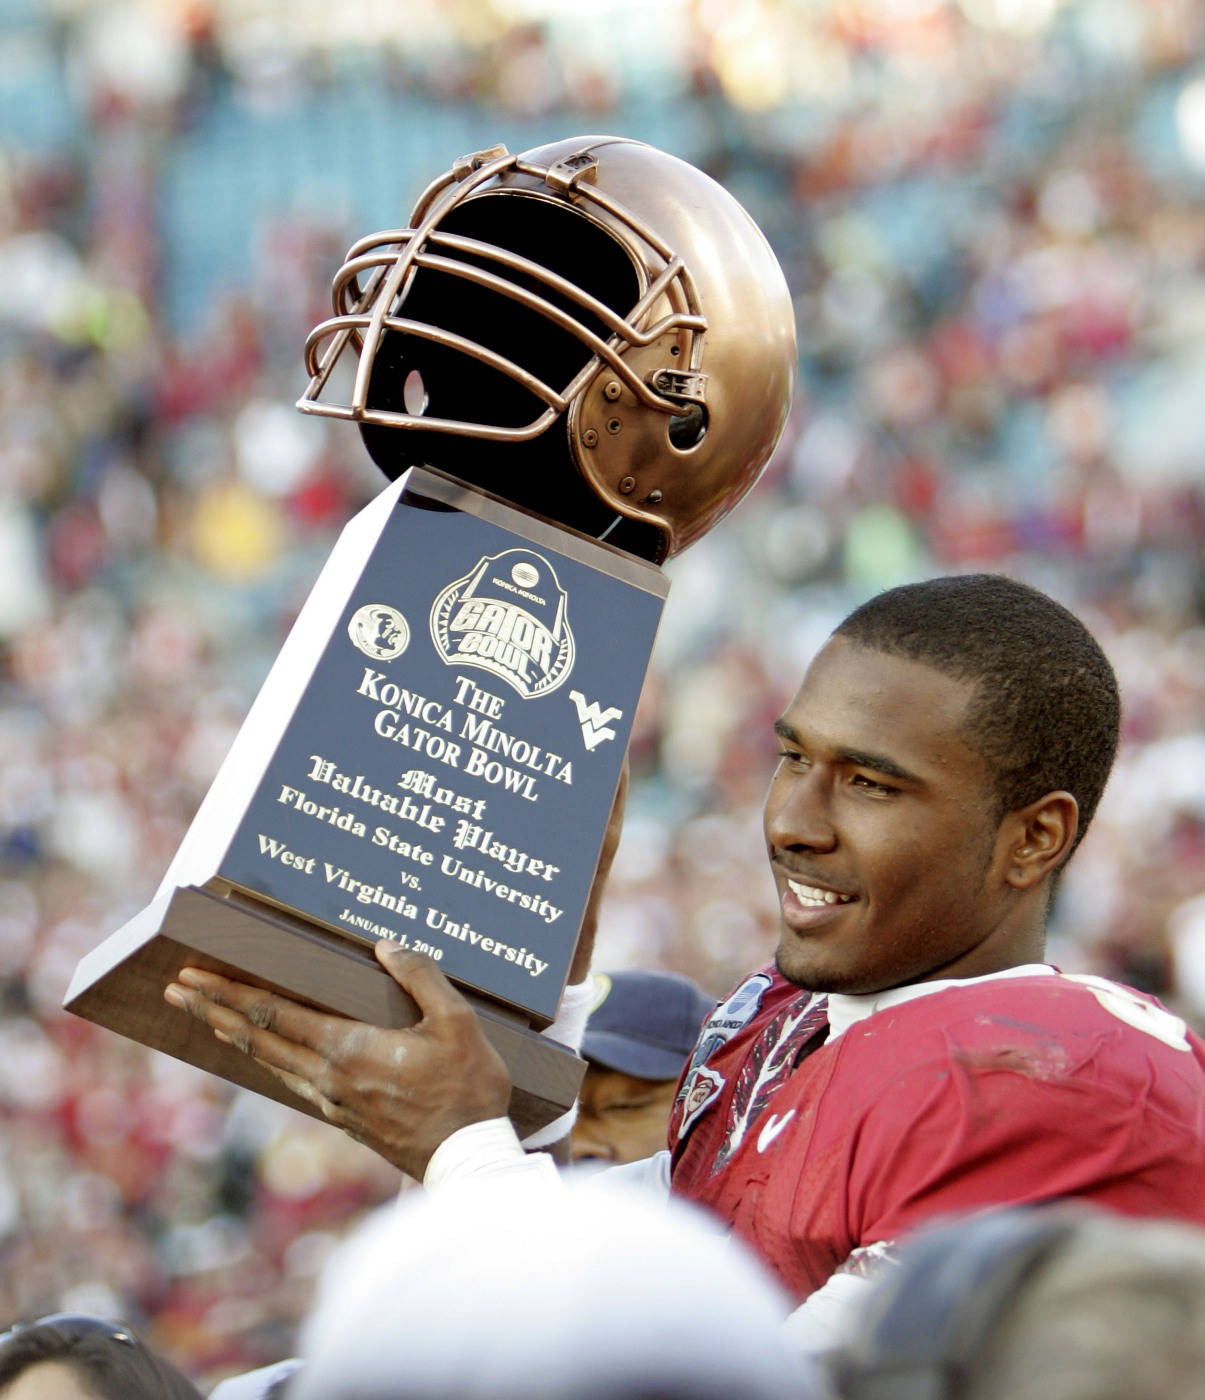 Florida State quarterback E.J. Manuel holds up the Most Valuable Player trophy following the Seminoles 33-21 win over West Virginia in the Gator Bowl NCAA college football game, Friday, Jan. 1, 2010, in Jacksonville, Fla. (AP Photo/Phil Coale)